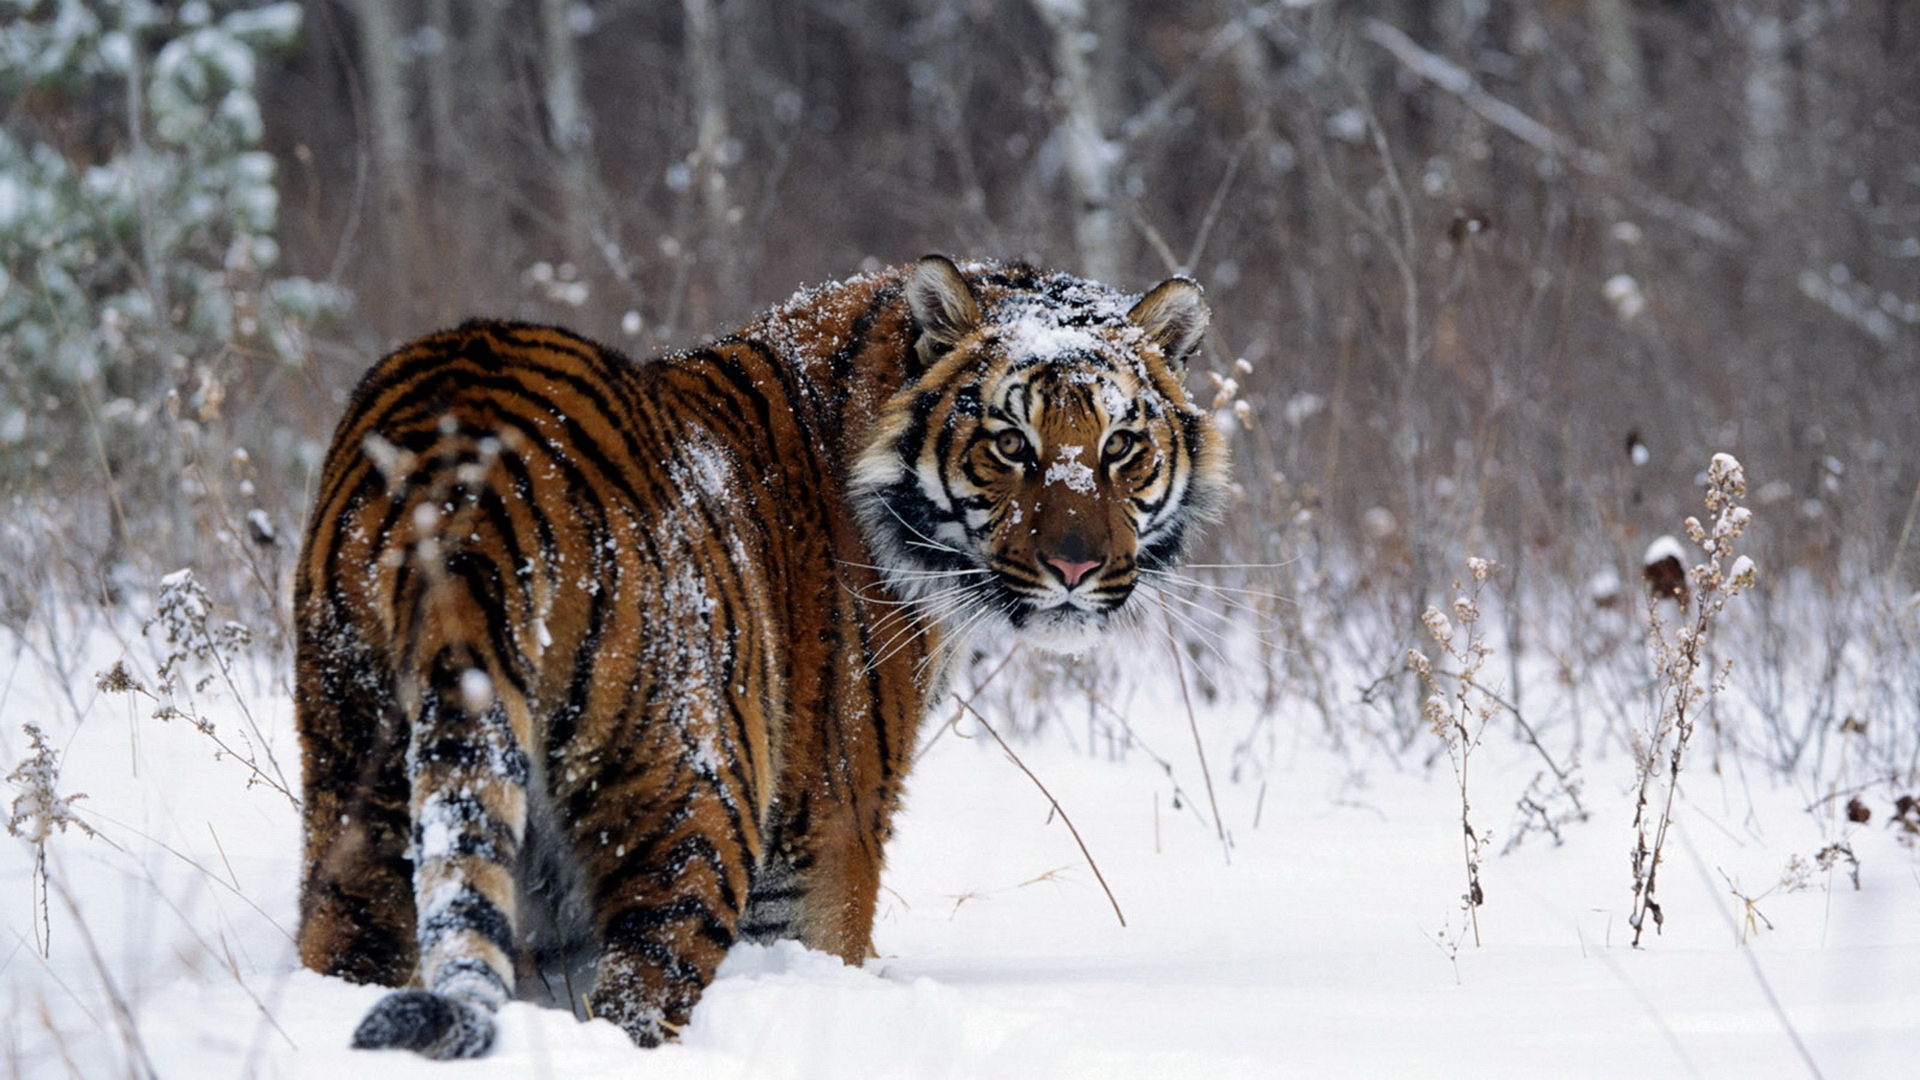 Animalia - Tigre  - Oso - Apple - Beautiful - Field - Gato - Animalia - Snow Fondo de Pantalla